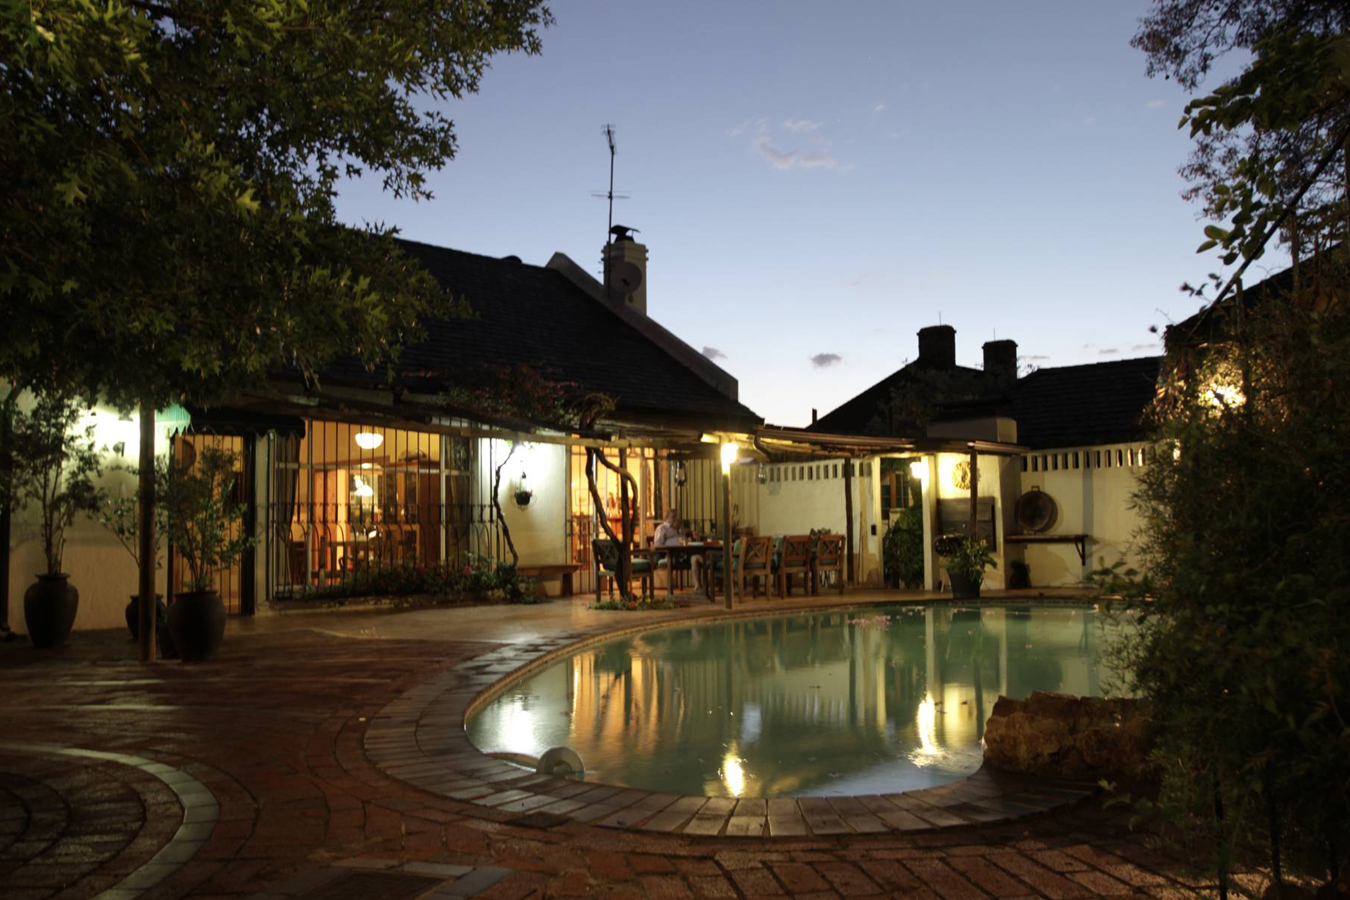 Single Family Home for Sale at Parktown Johannesburg, Gauteng, 2192 South Africa